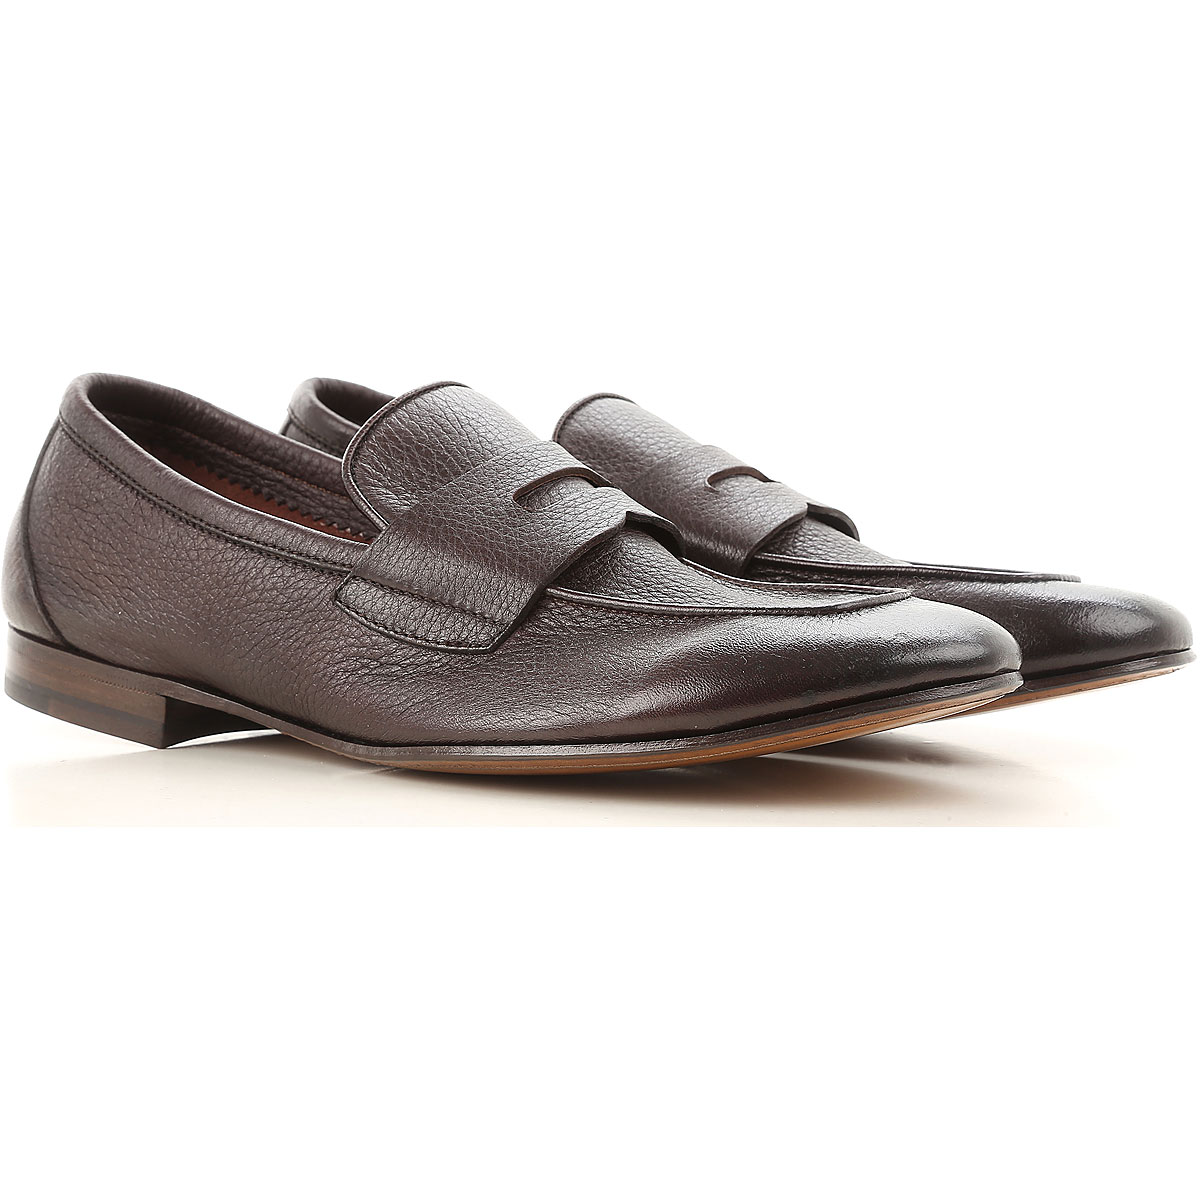 Henderson Loafers for Men, Dark Brown, Leather, 2019, 10.5 11 6 7.5 9 9.5